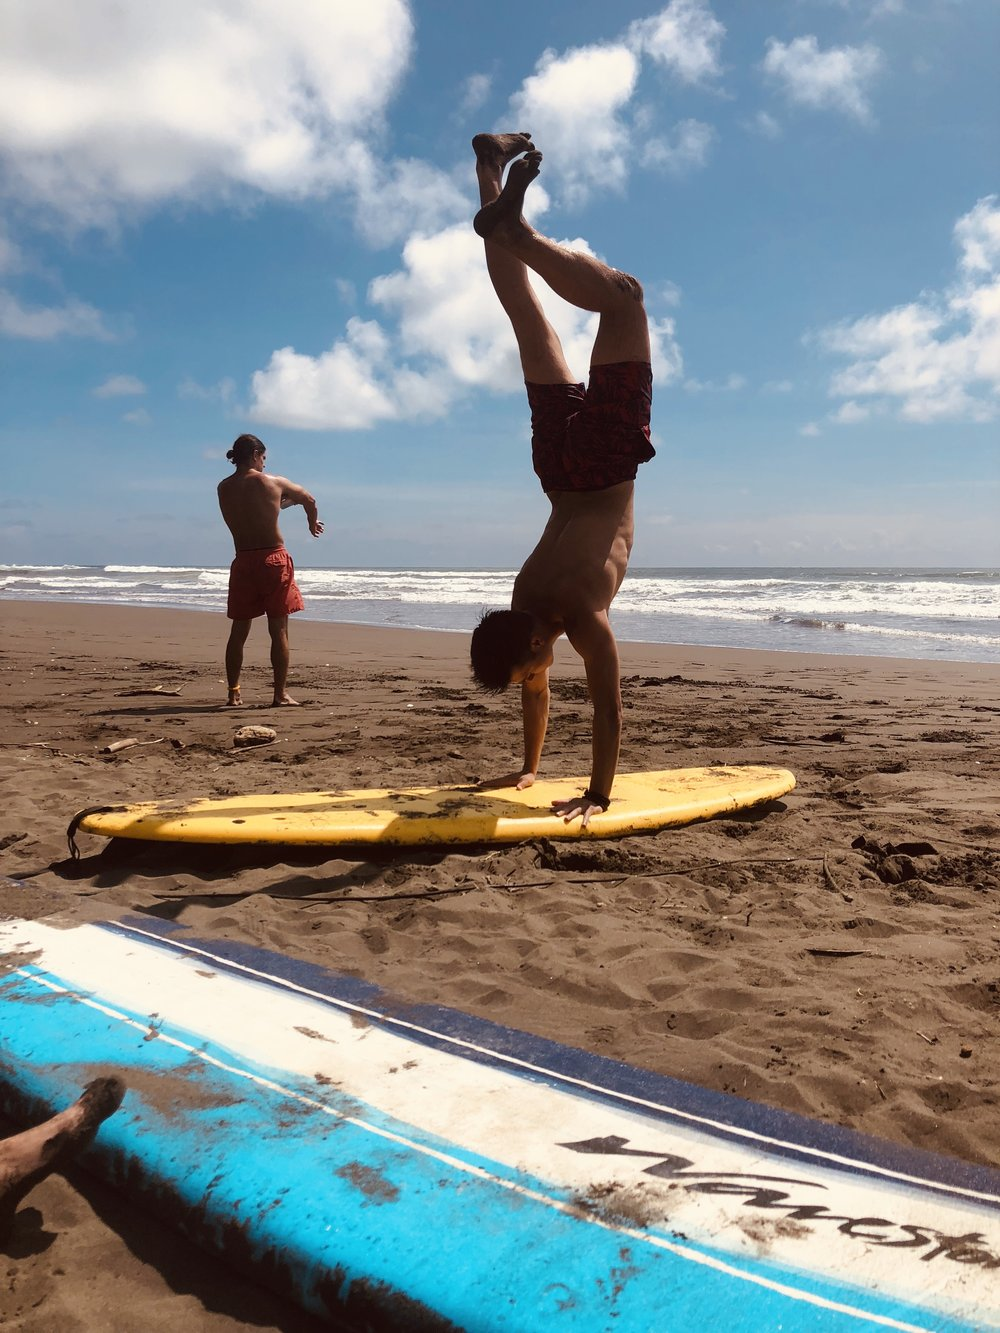 Pura Vida - Drew and Tyler are cousins and also enjoyed surfing at Playa Bejuco, goof thing Outsite had some boards on hand!